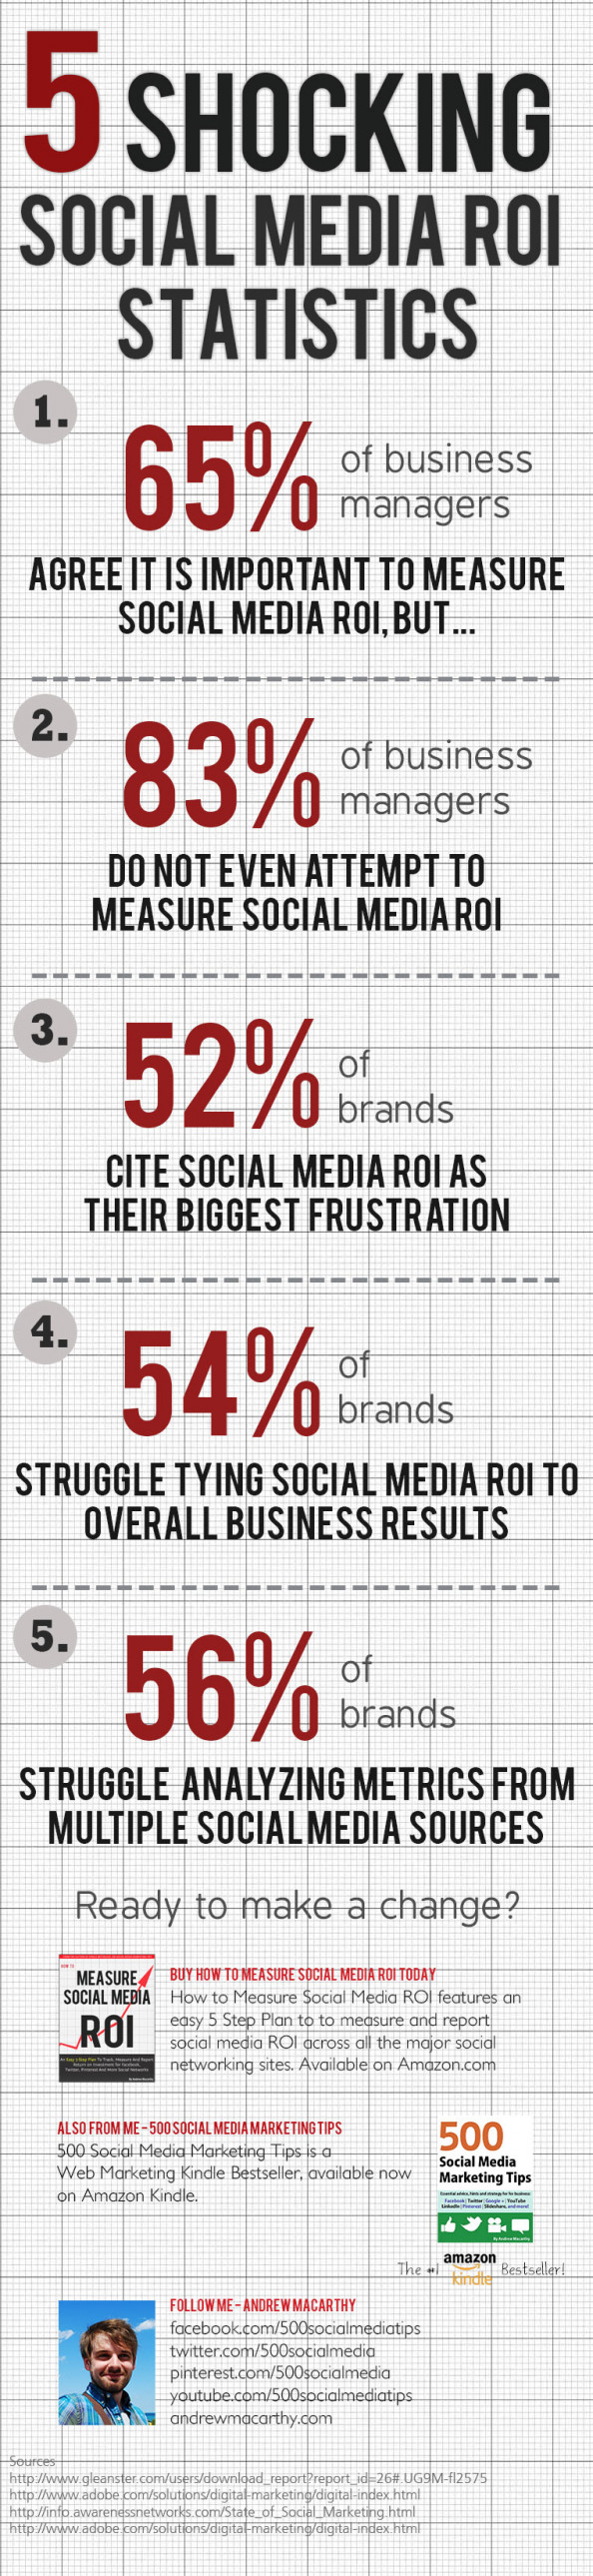 5 Shocking Social Media ROI Statistics Infographic